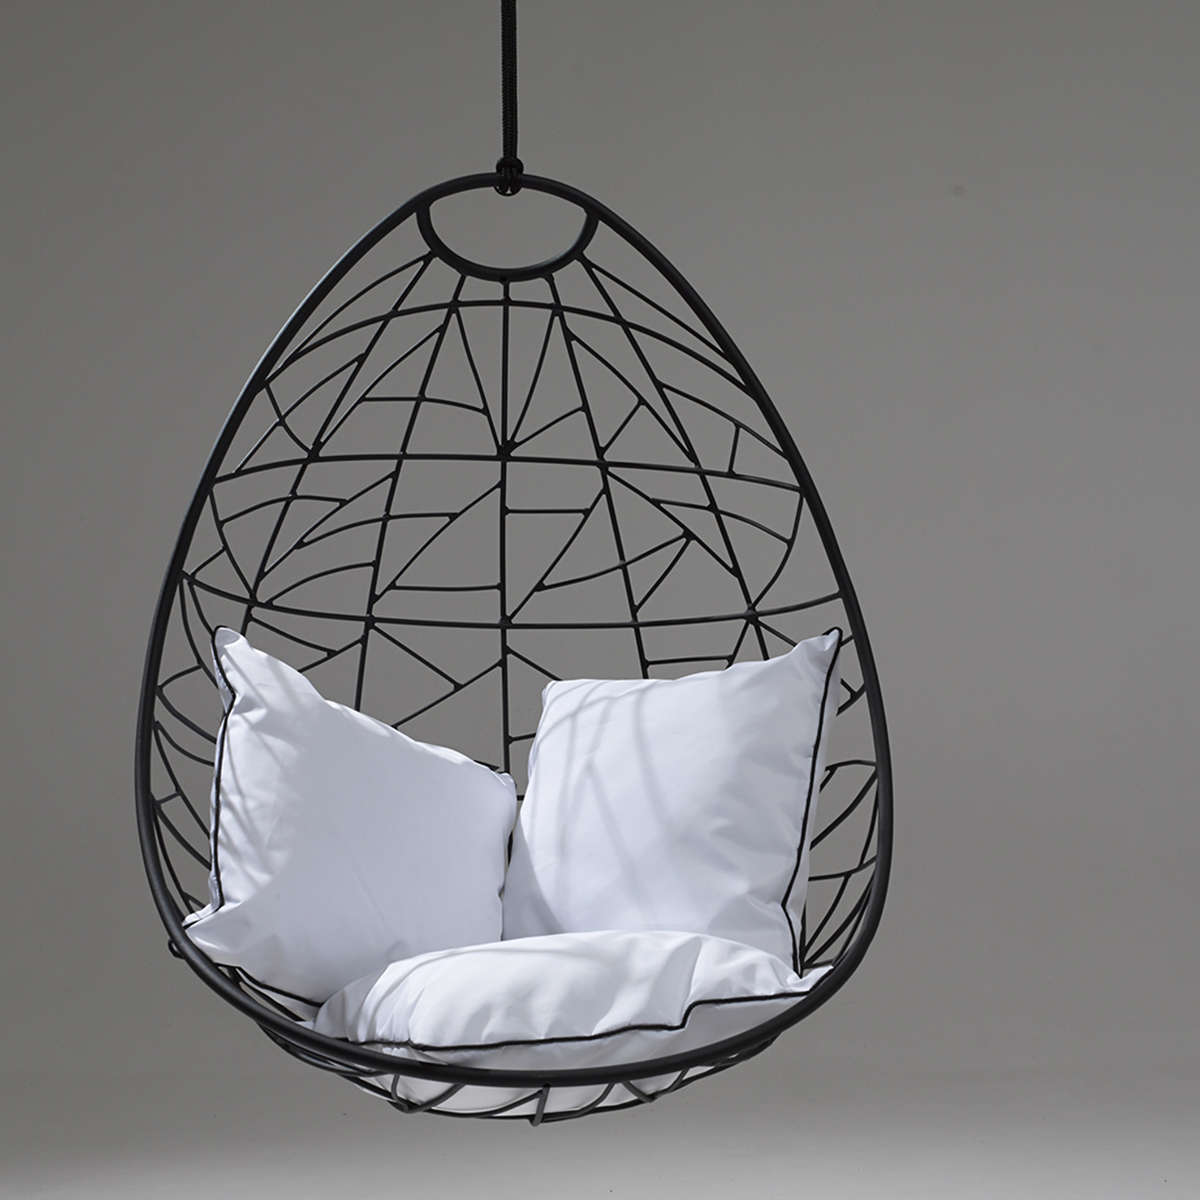 Nest Egg Swing Seat